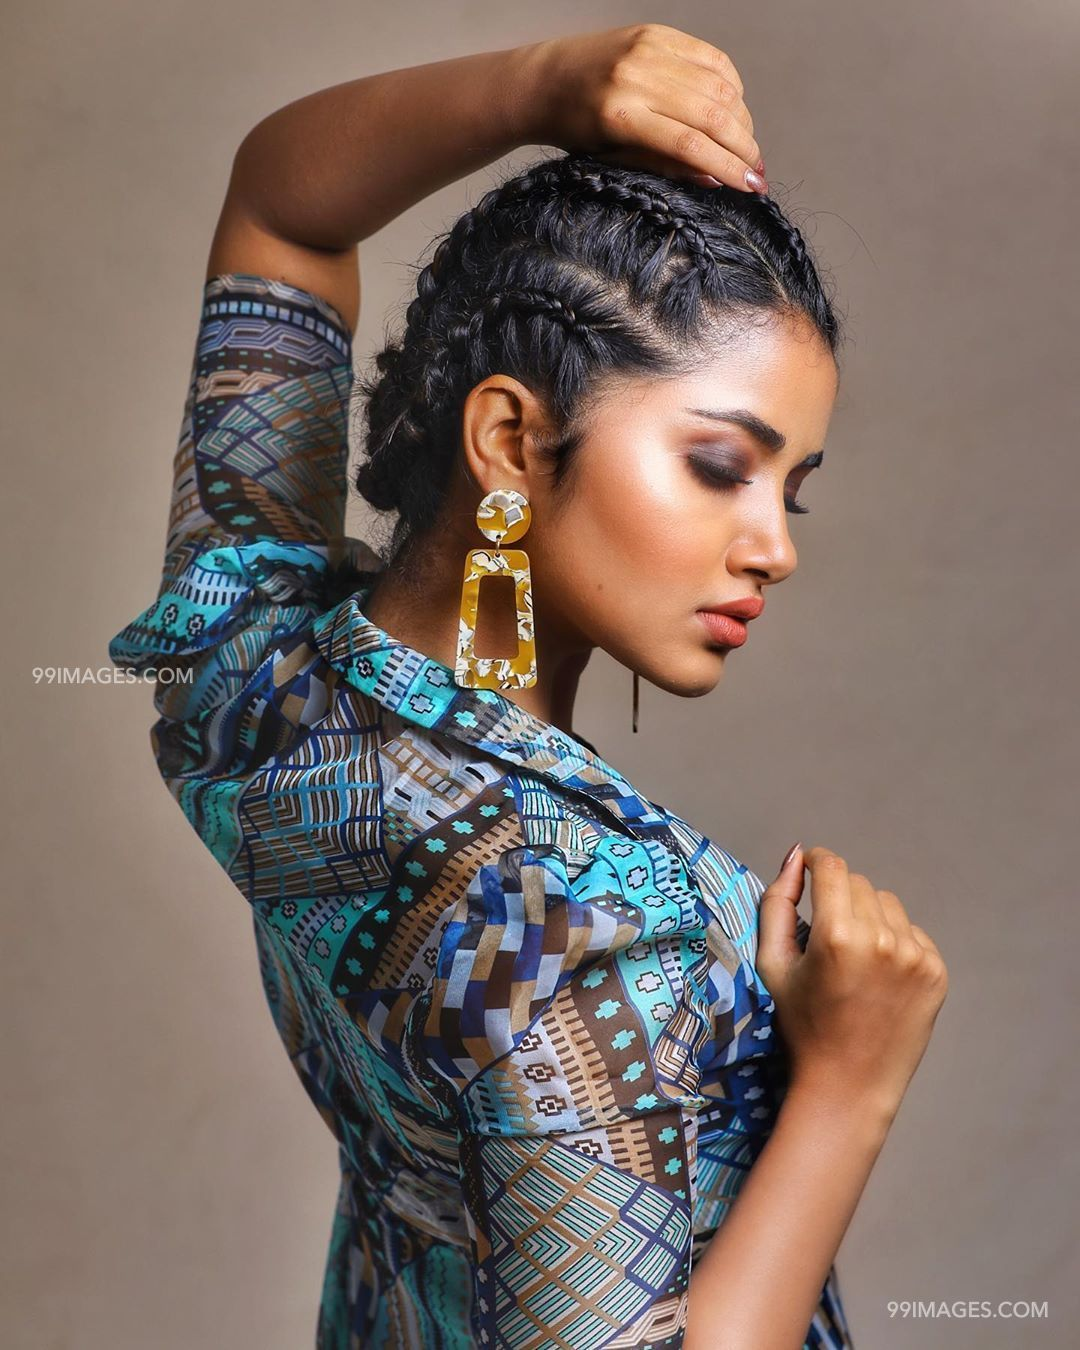 Anupama Parameswaran HD Wallpapers (Desktop Background / Android / iPhone) (1080p, 4k) (81970) - Anupama Parameswaran